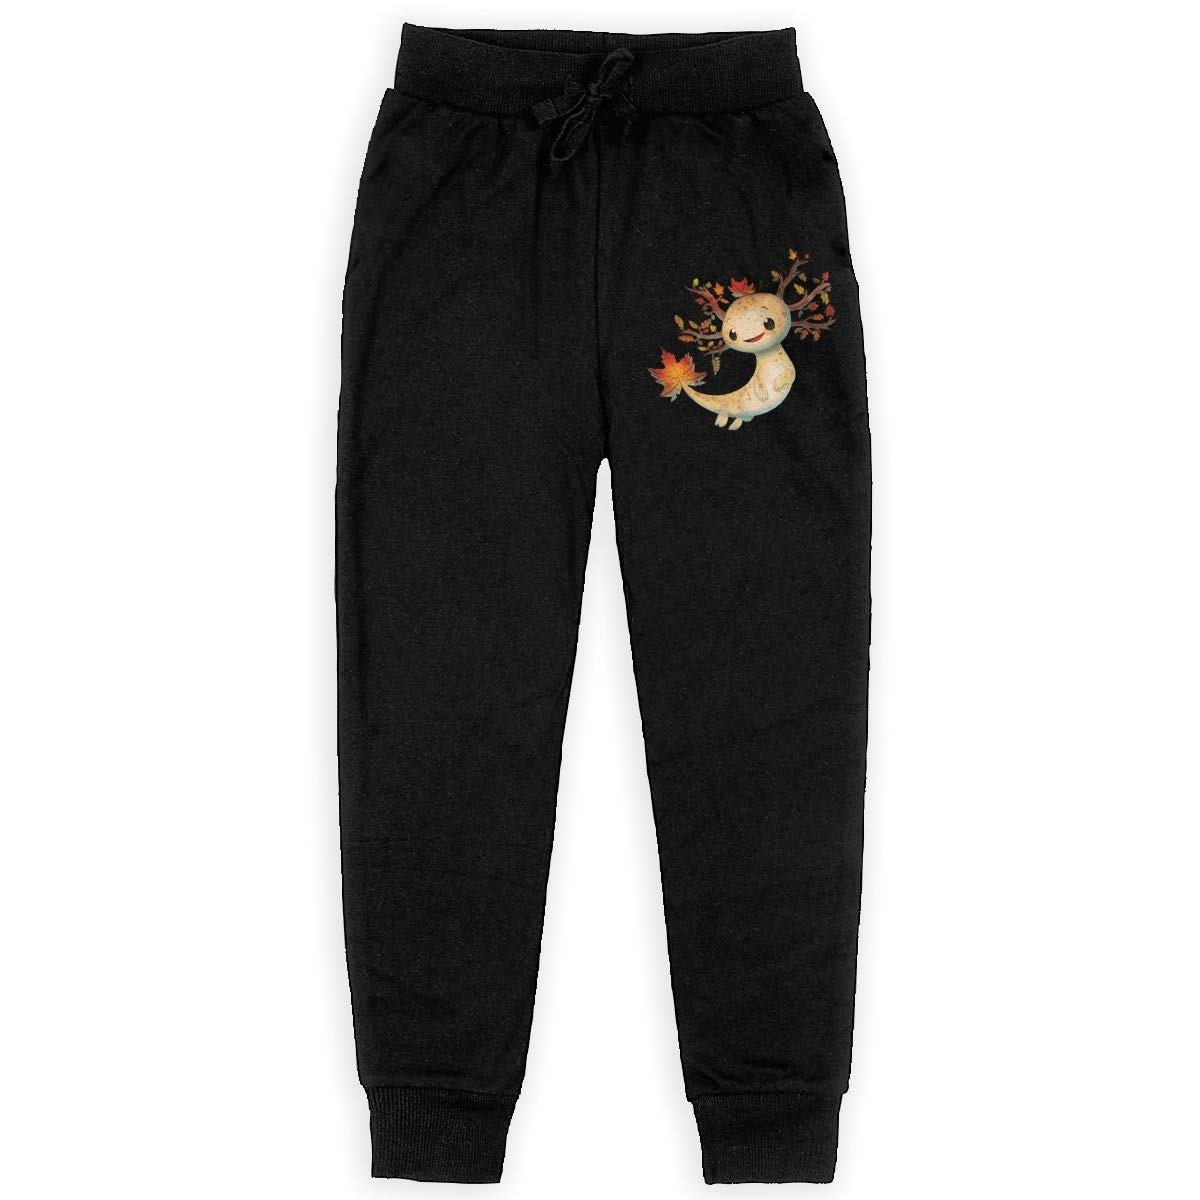 Qinf Boys Sweatpants Dryad Joggers Sport Training Pants Trousers Cotton Sweatpants for Youth